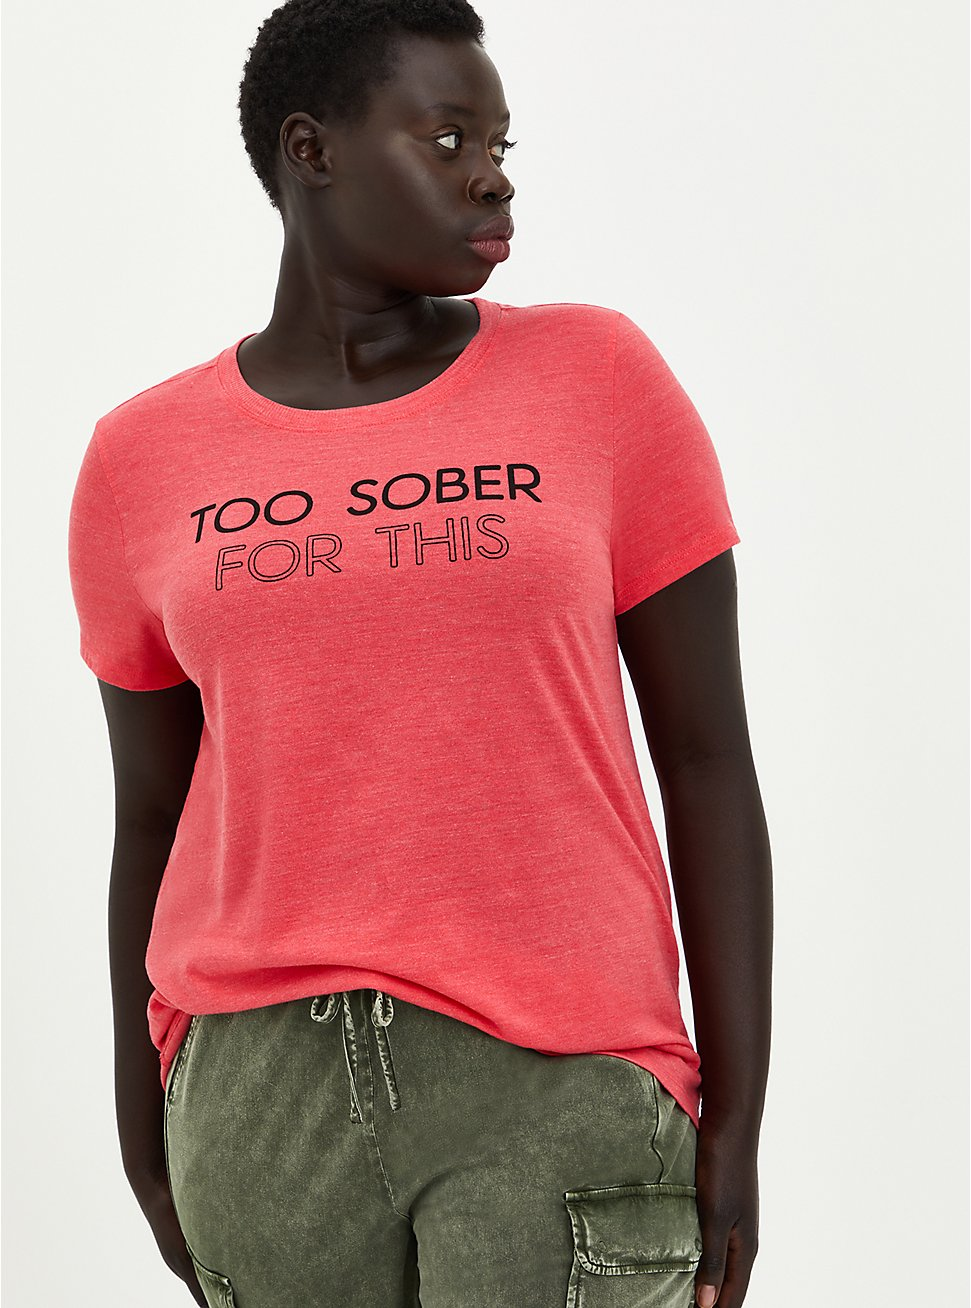 Classic Fit Vintage Tee - Triblend Jersey Bright Berry Too Sober, TEABERRY, hi-res